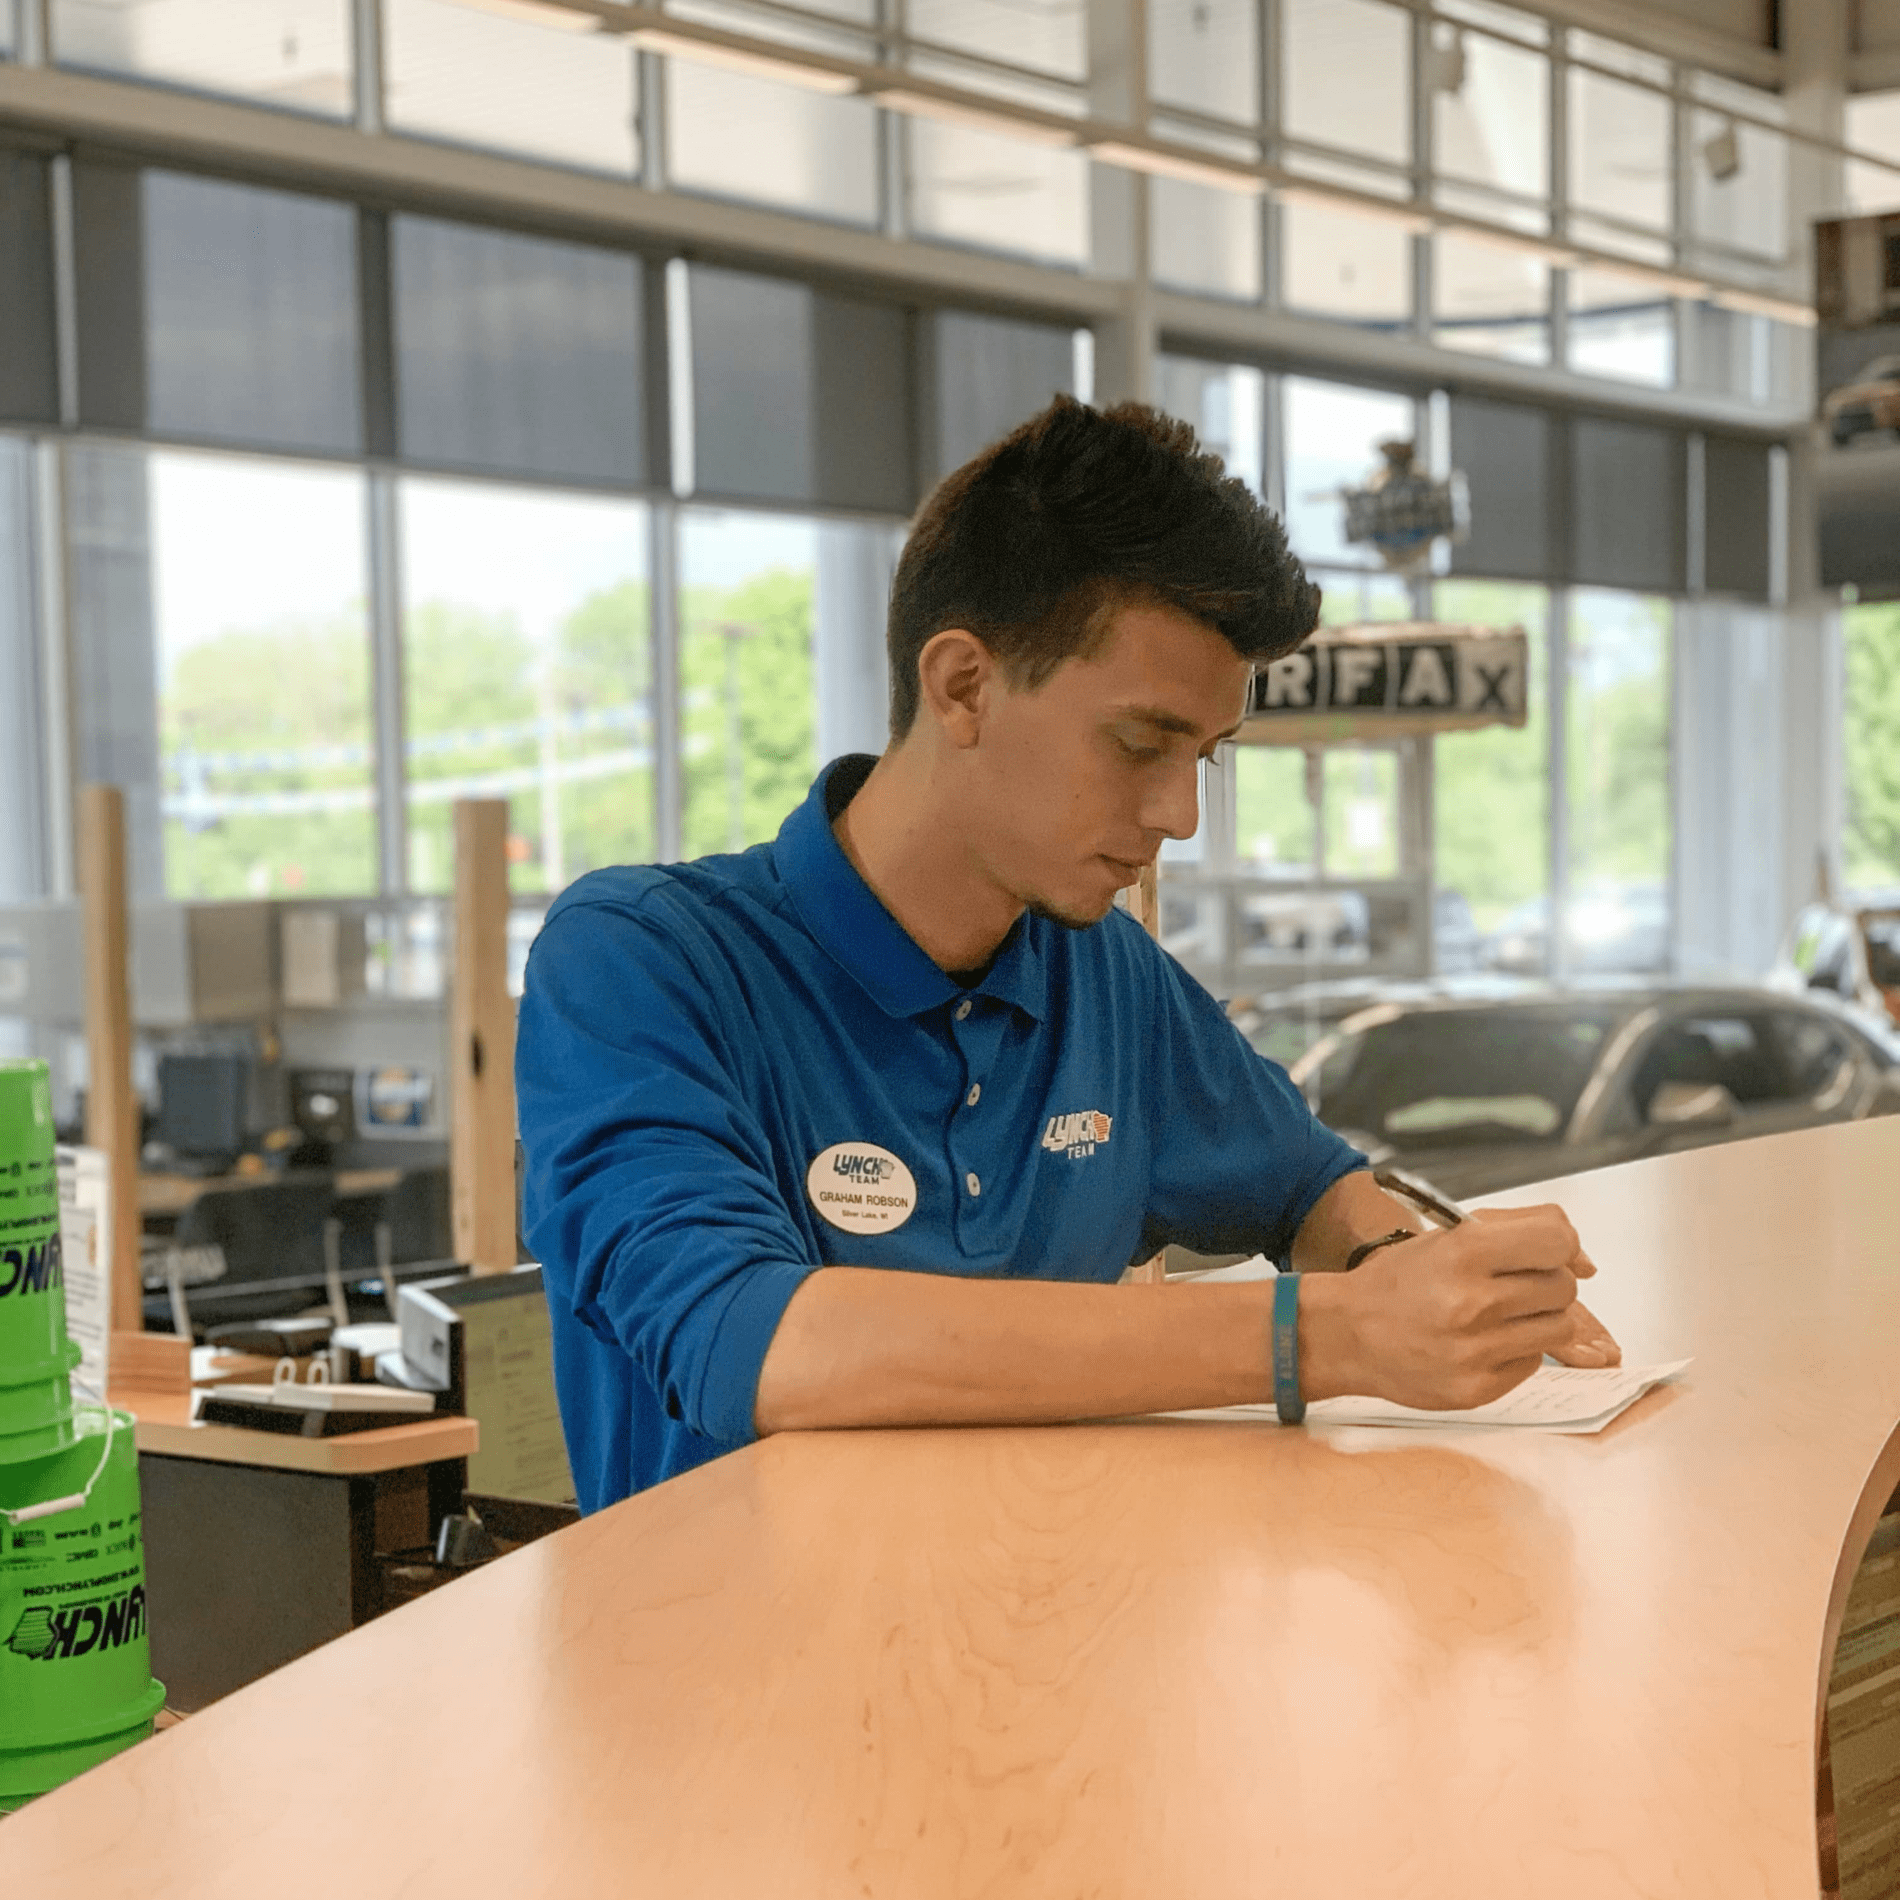 Car salesman fills out form at counter